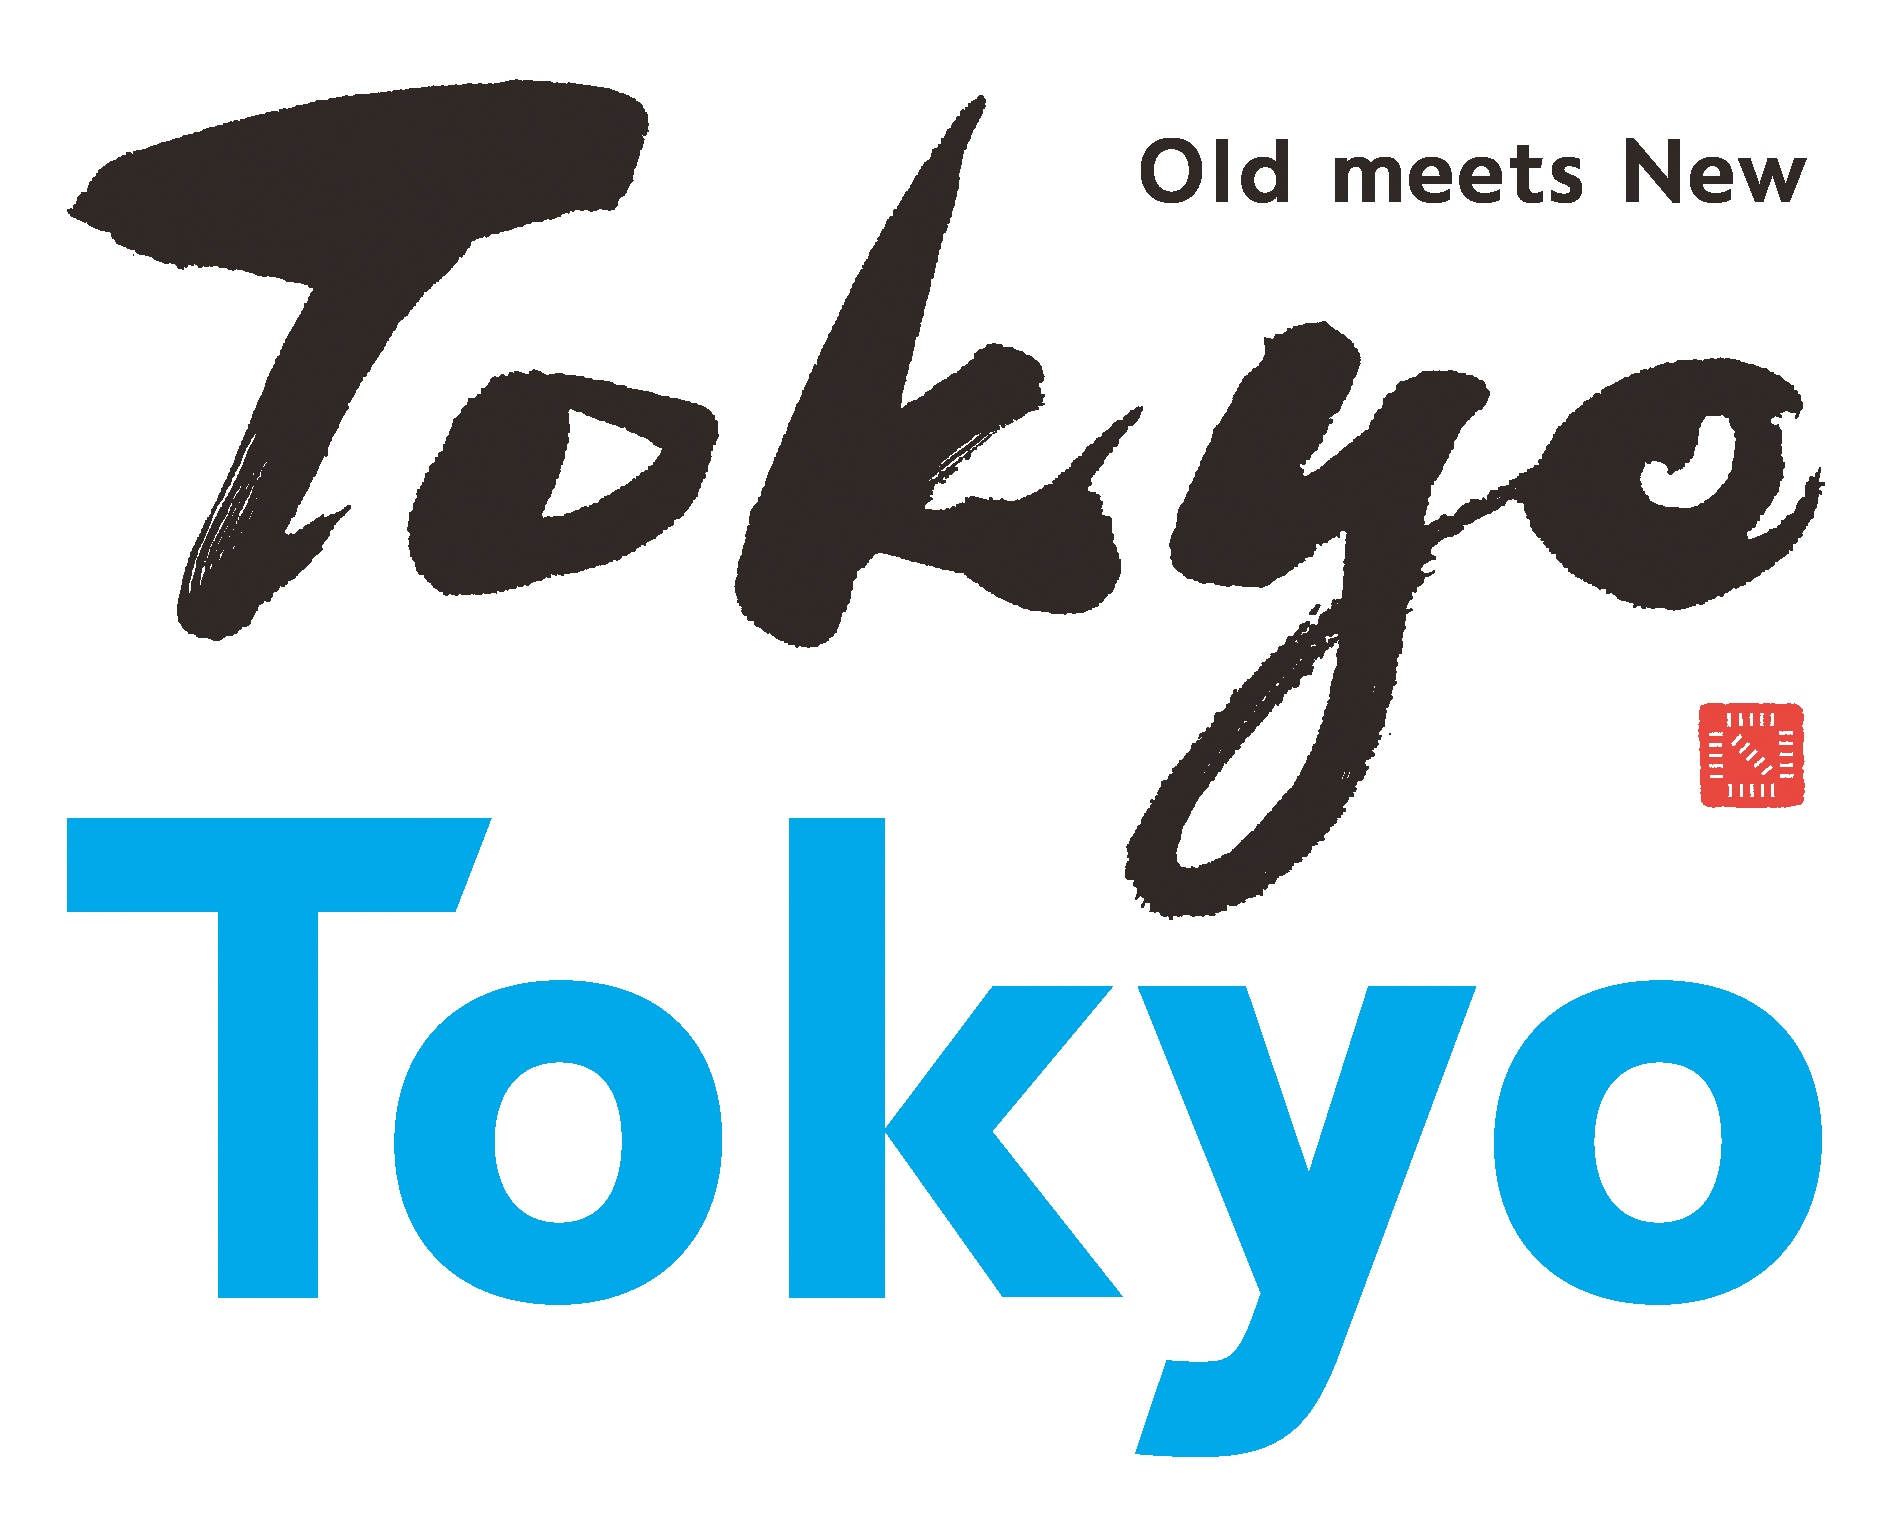 79th International Photographic Salon: Tokyo Tokyo Old Meets New Award